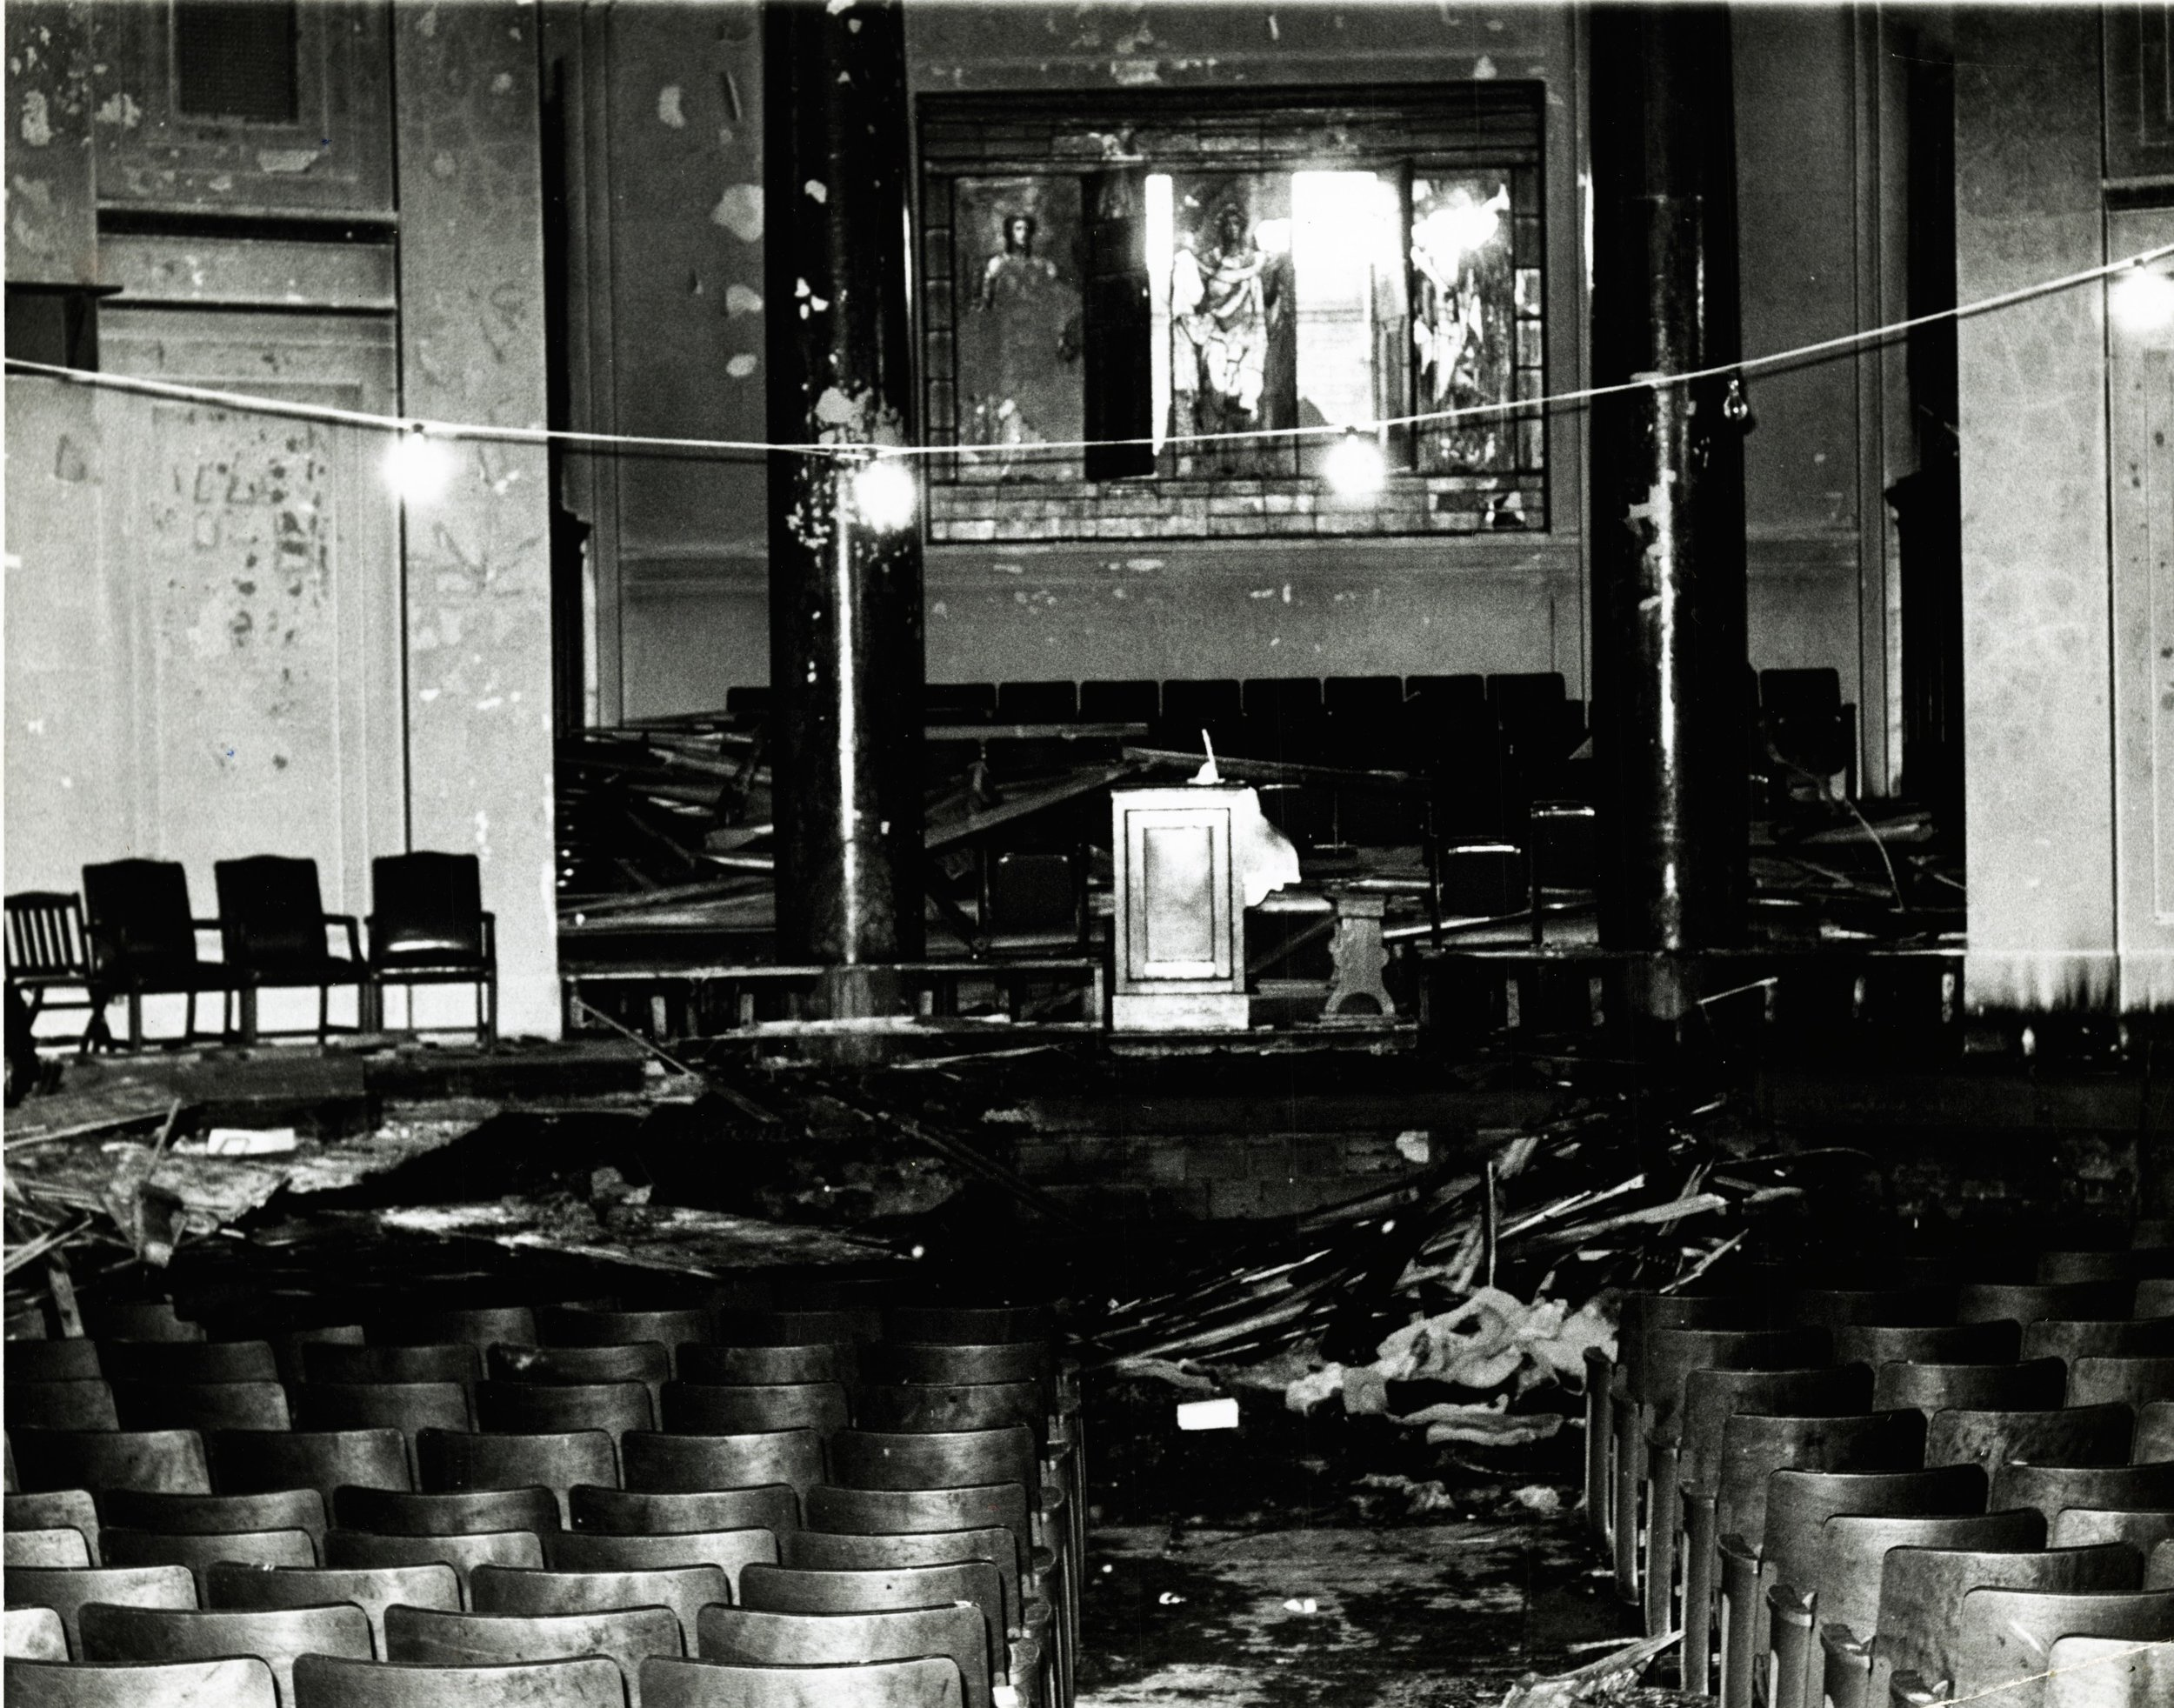 The auditorium of Gould Memorial Library in 1969, after being firebombed during student protests. Photo:New York University Archives